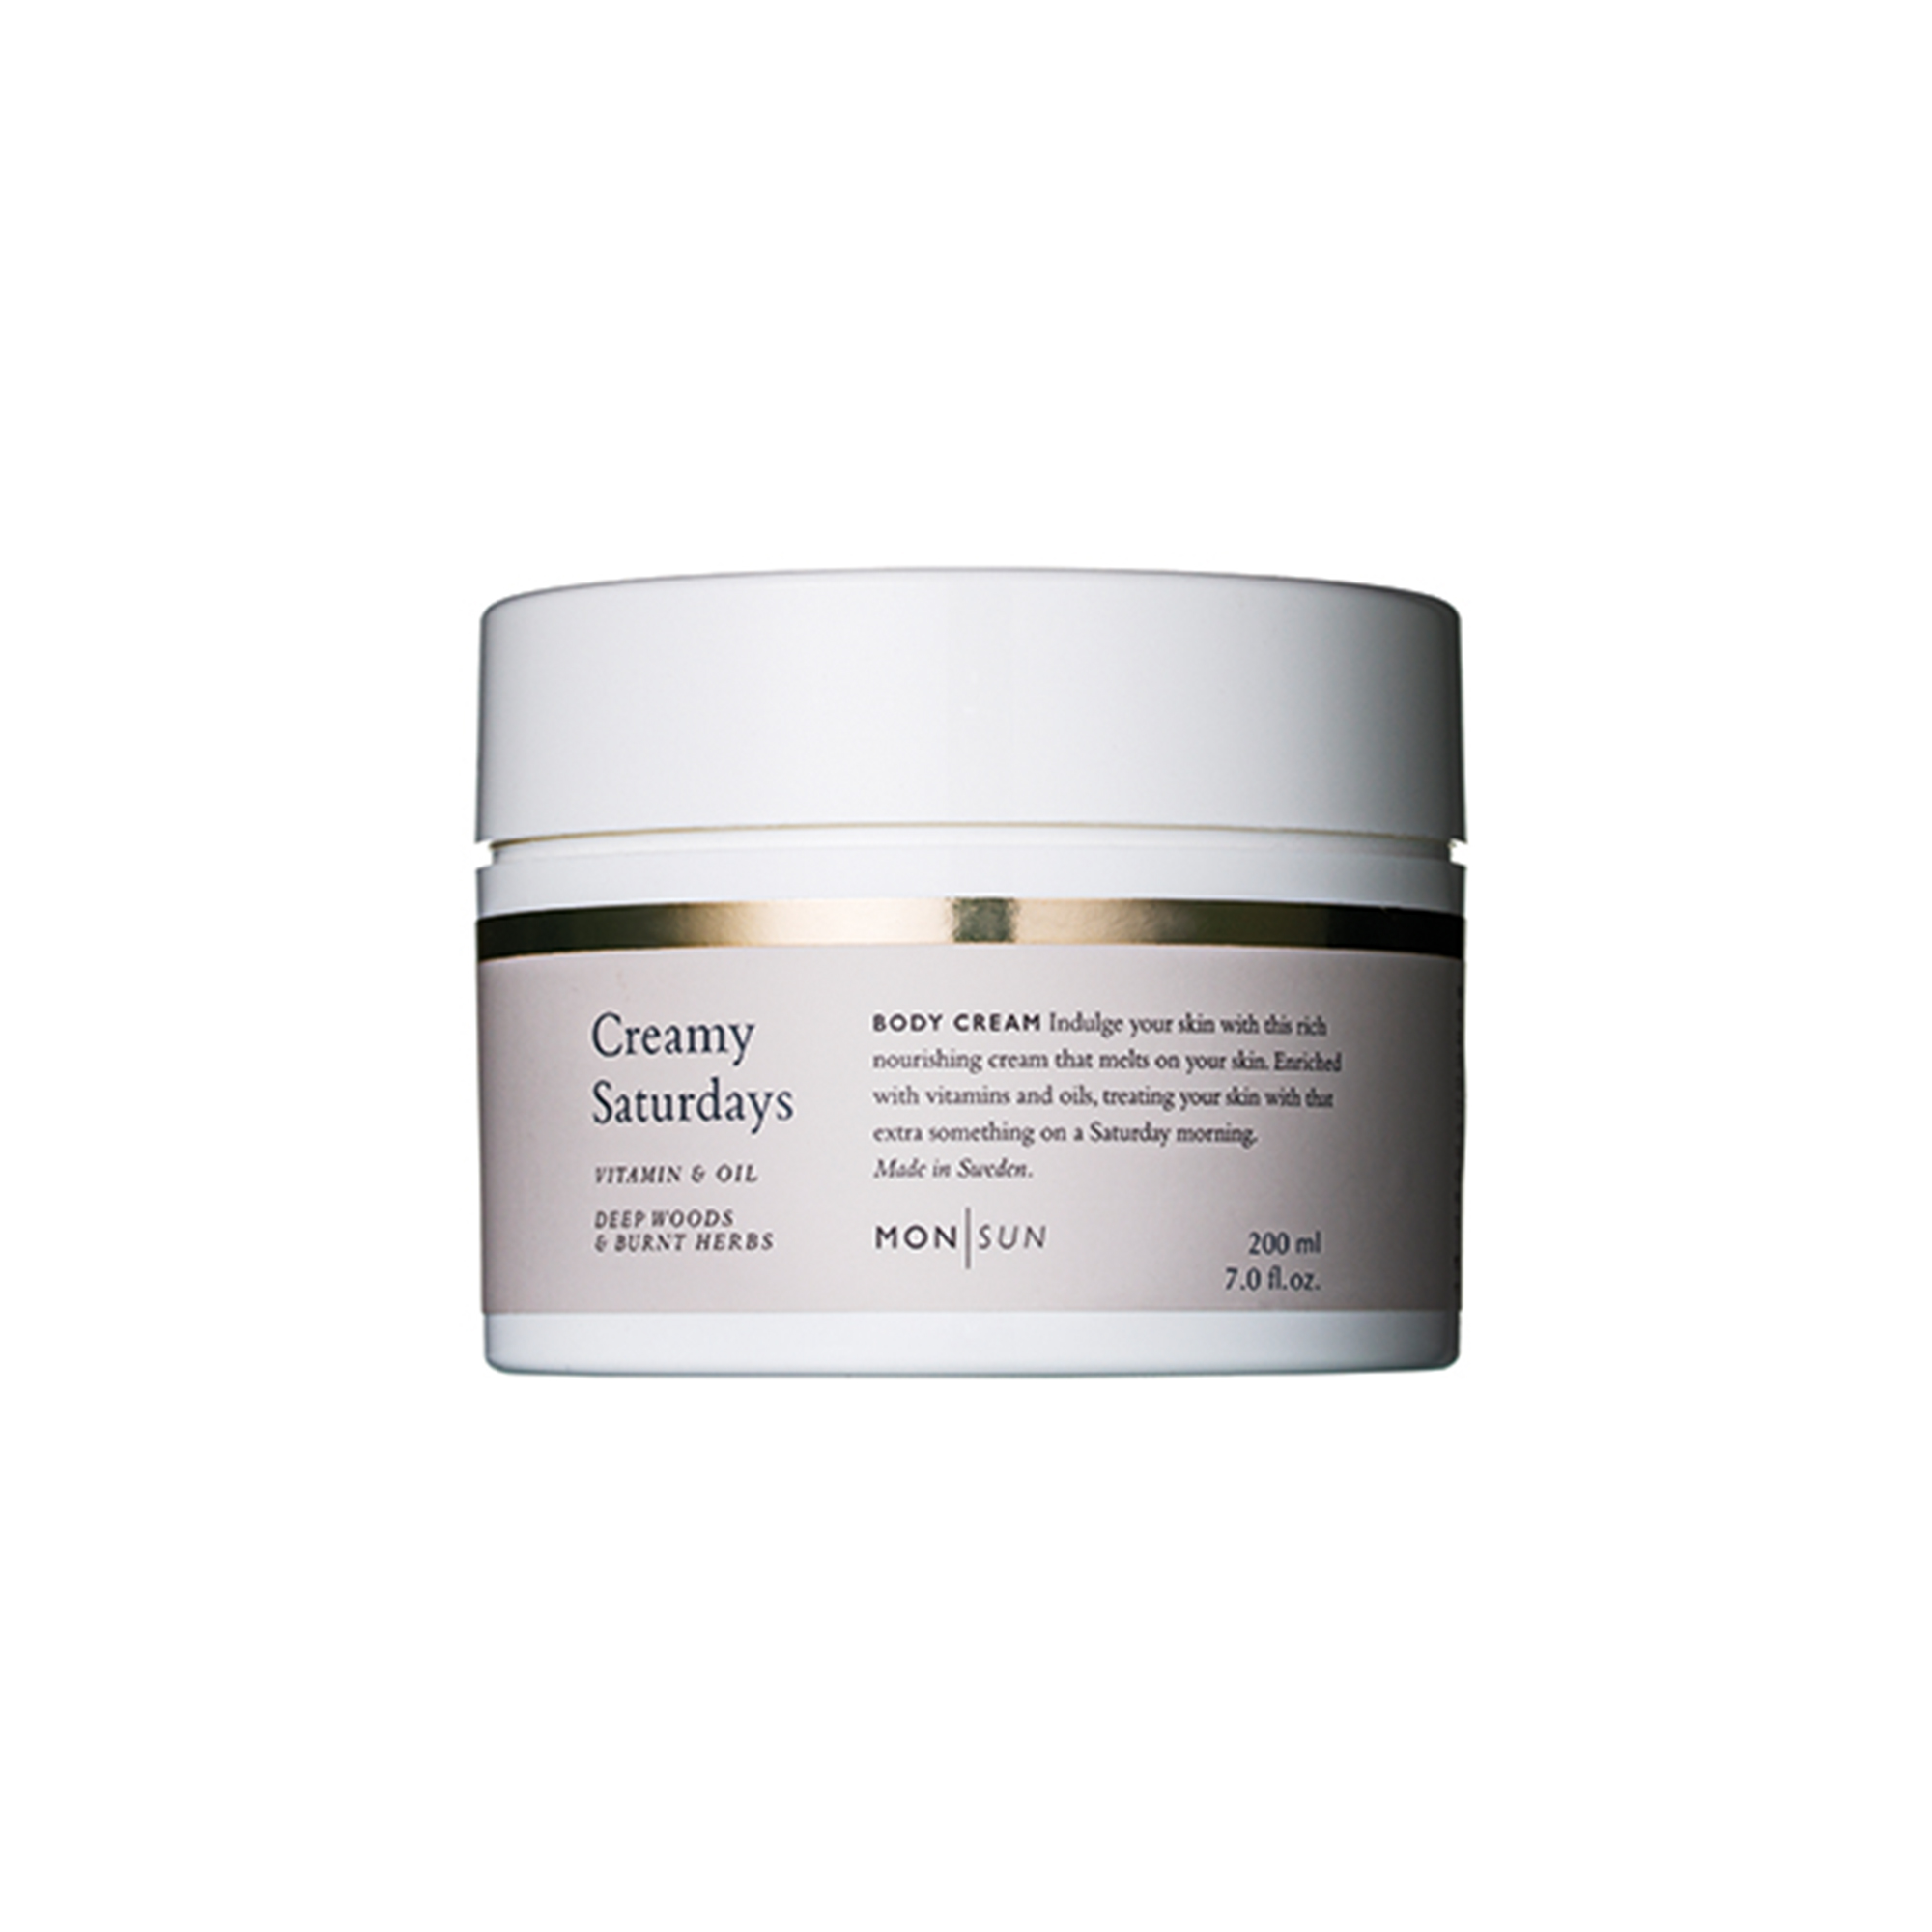 Creamy Saturdays Vitamin & Oil Body Cream